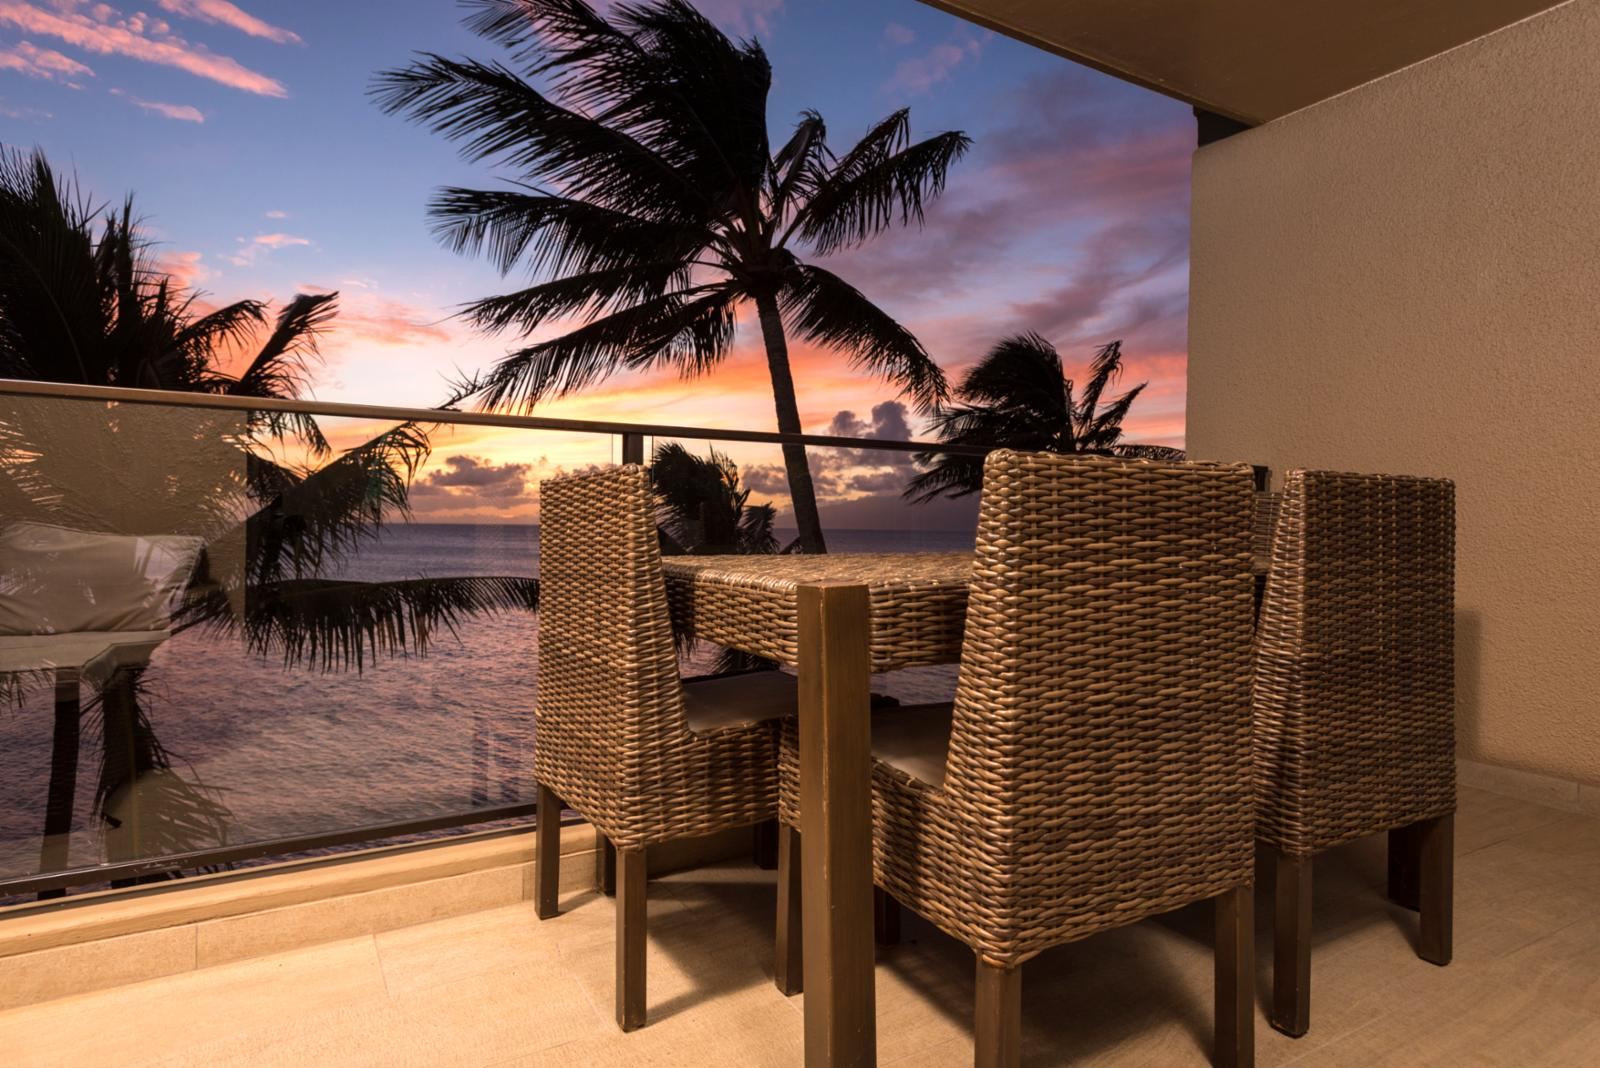 Dine oceanfront nightly and enjoy the endless sunsets!